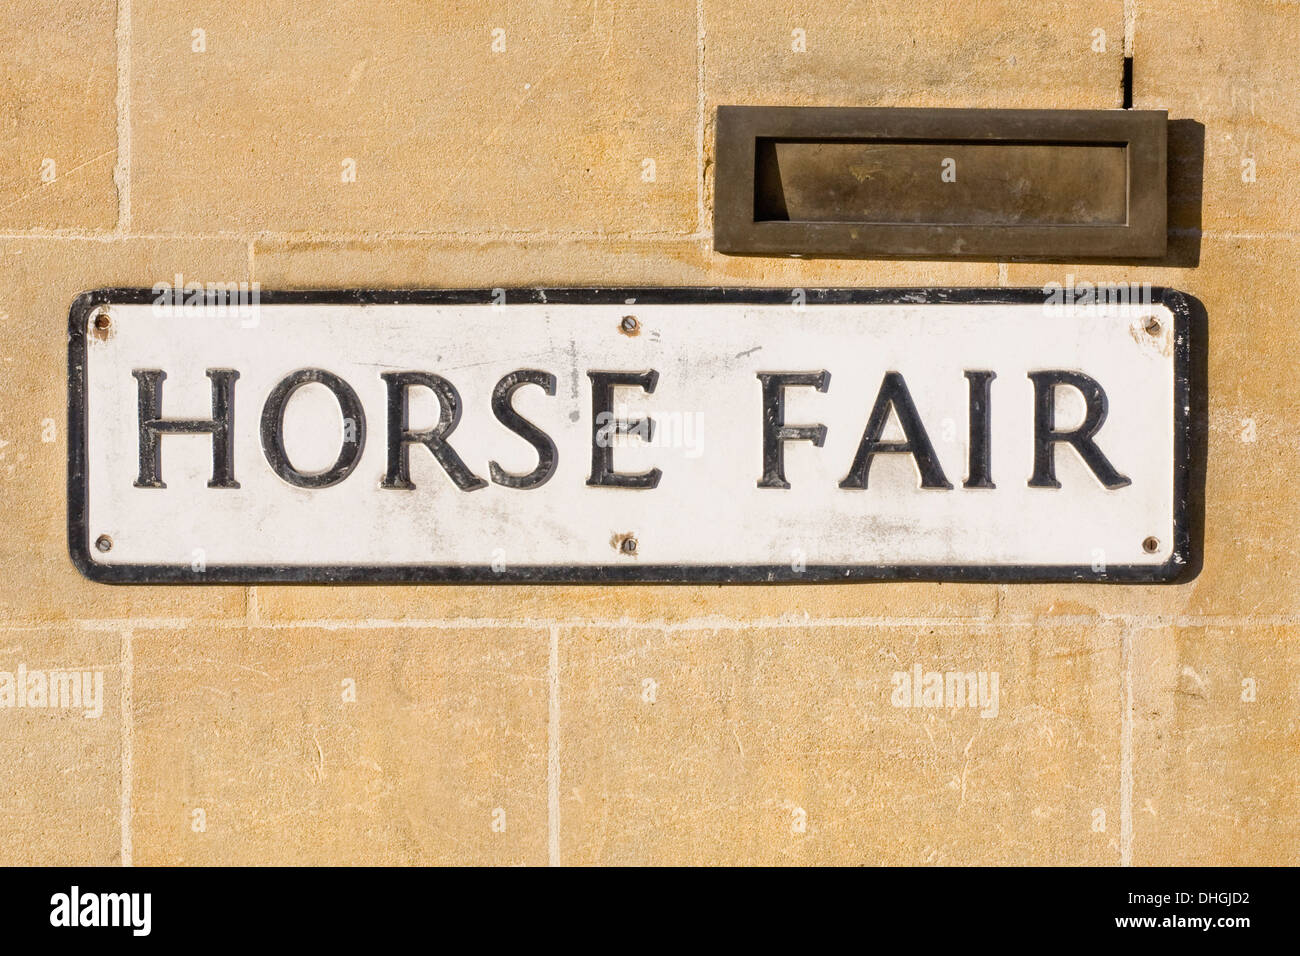 Street sign for Horse Fair in Banbury, Oxfordshire. - Stock Image